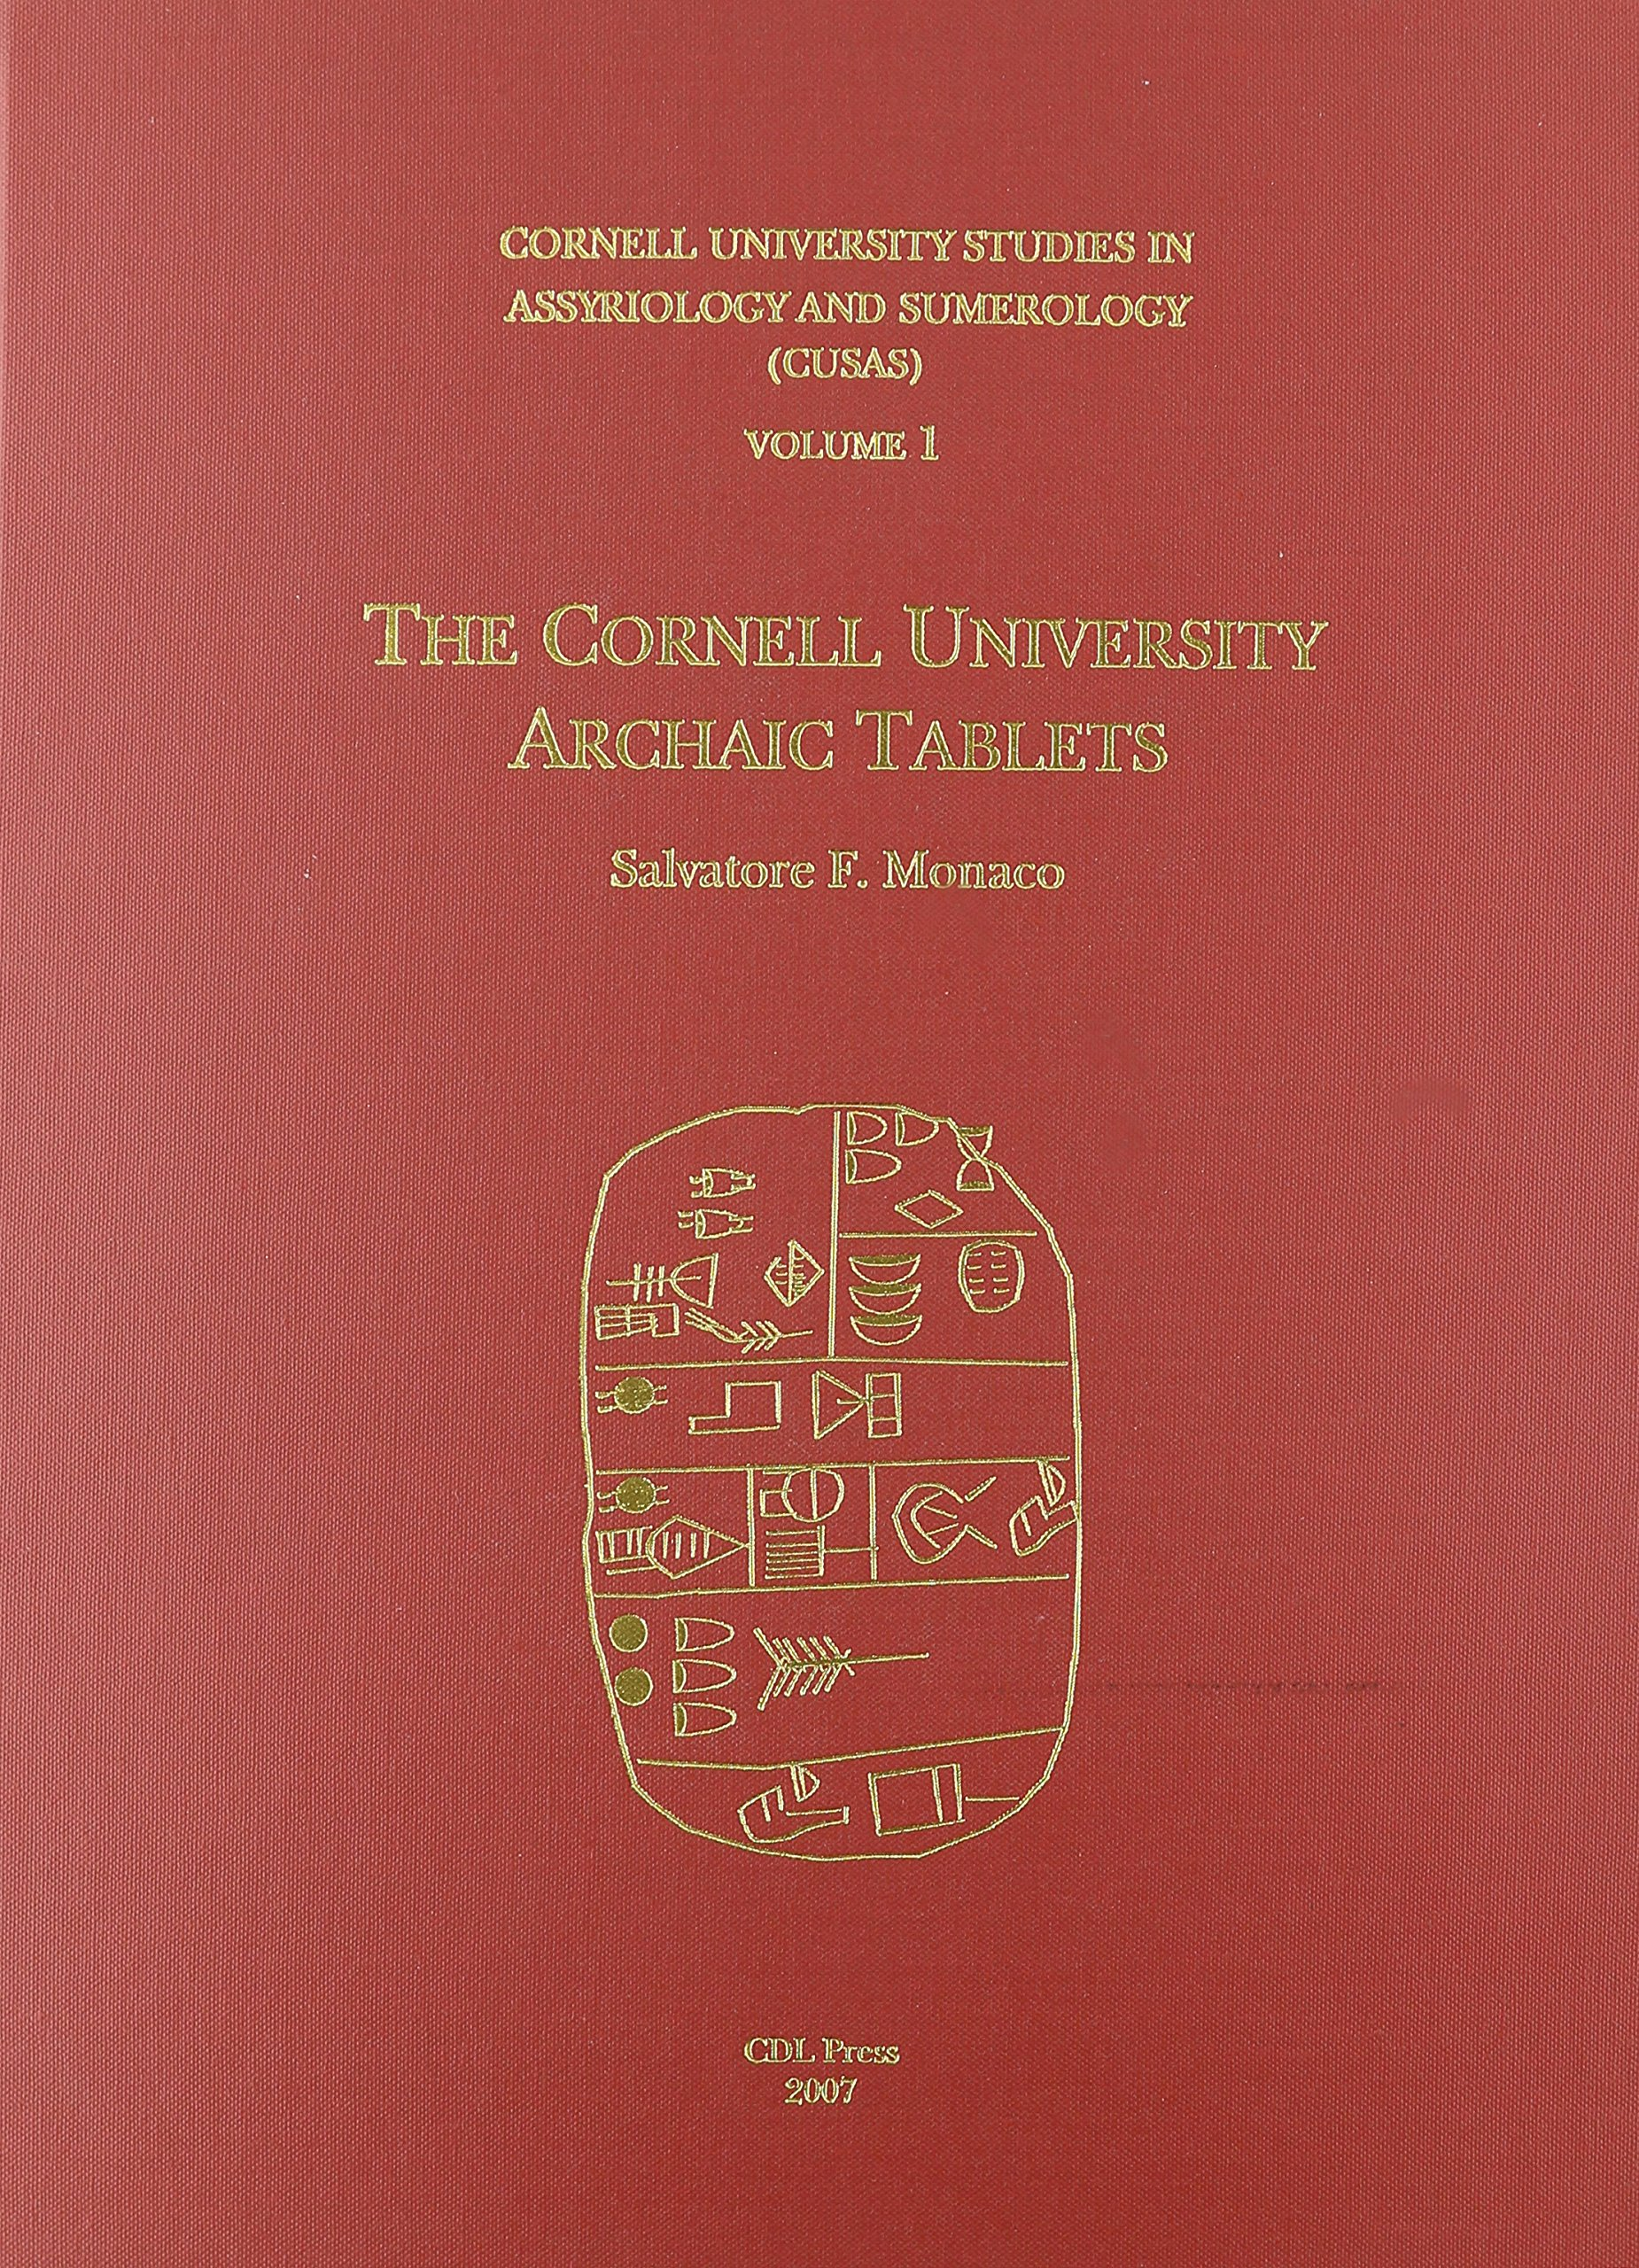 CUSAS 01: The Cornell University Archaic Tablets